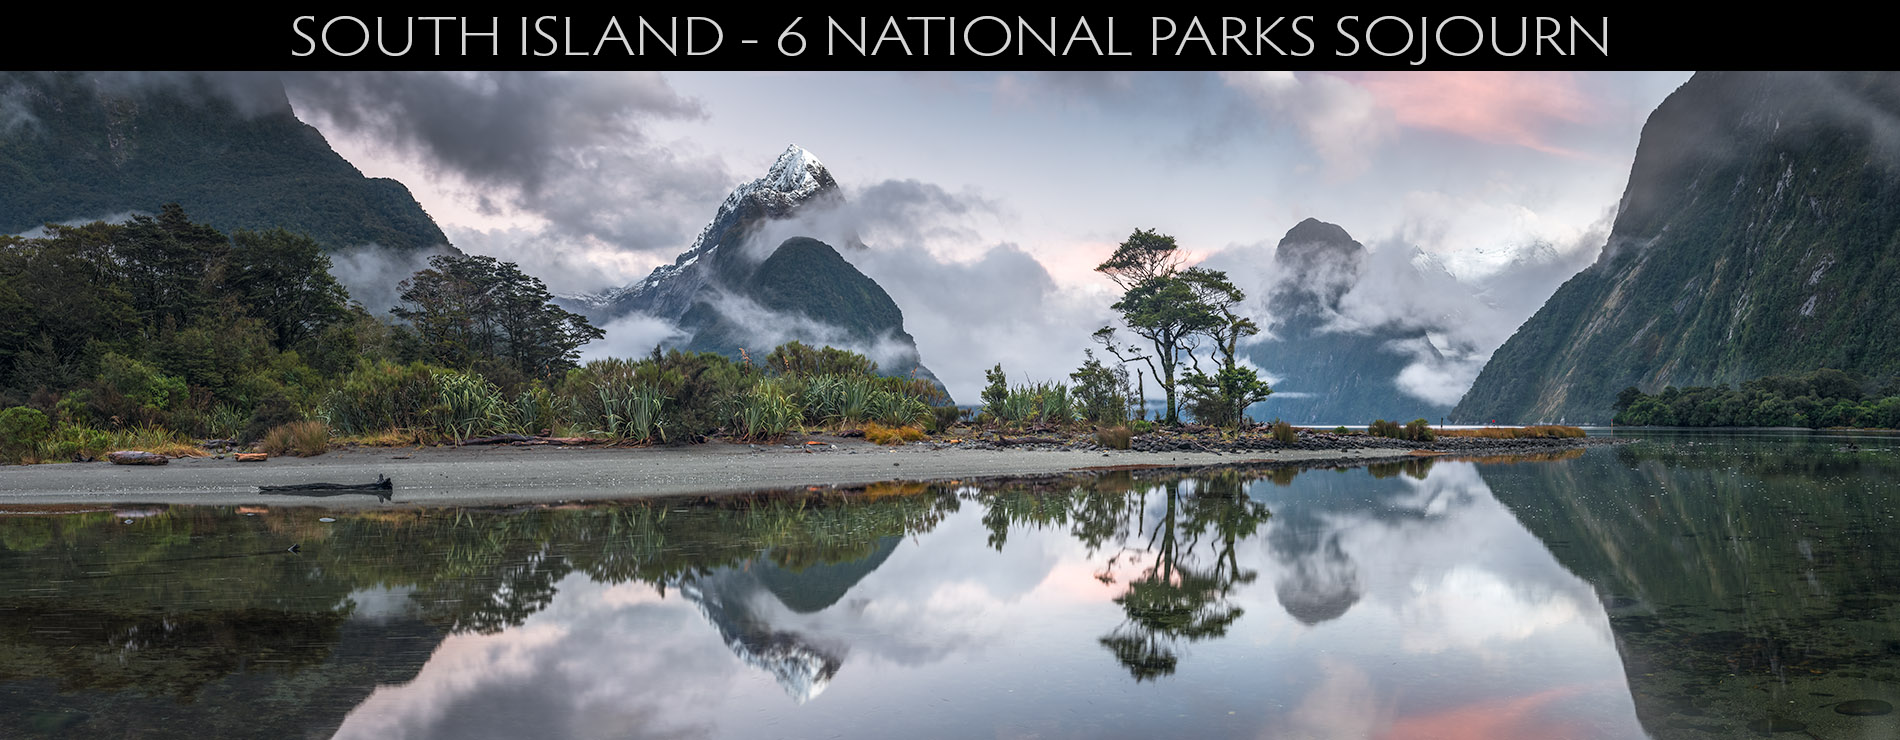 6 National Parks Sojourn